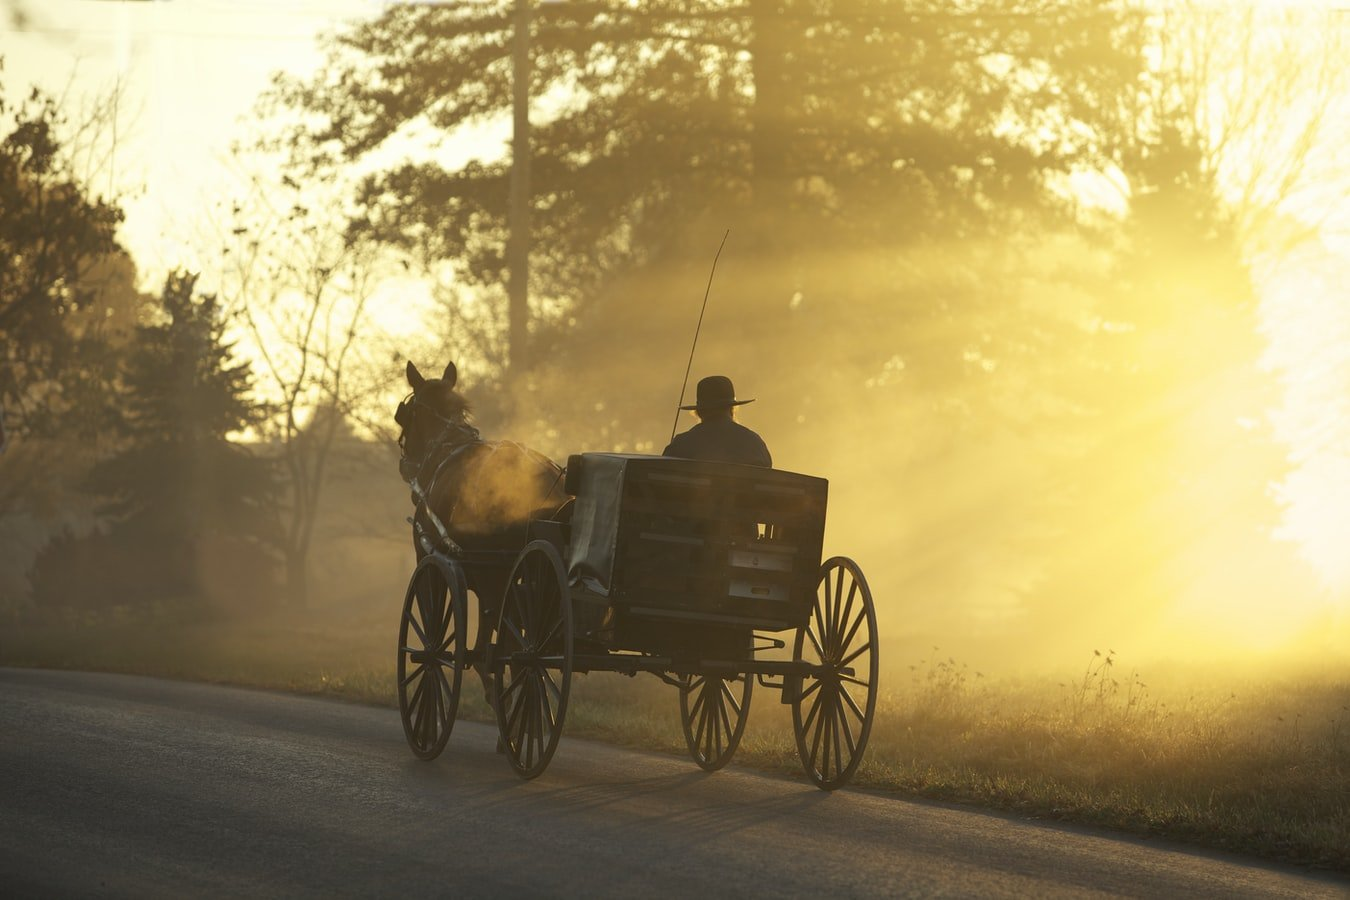 A man riding a carriage on the road.   Photo: Unsplash/Randy Fath